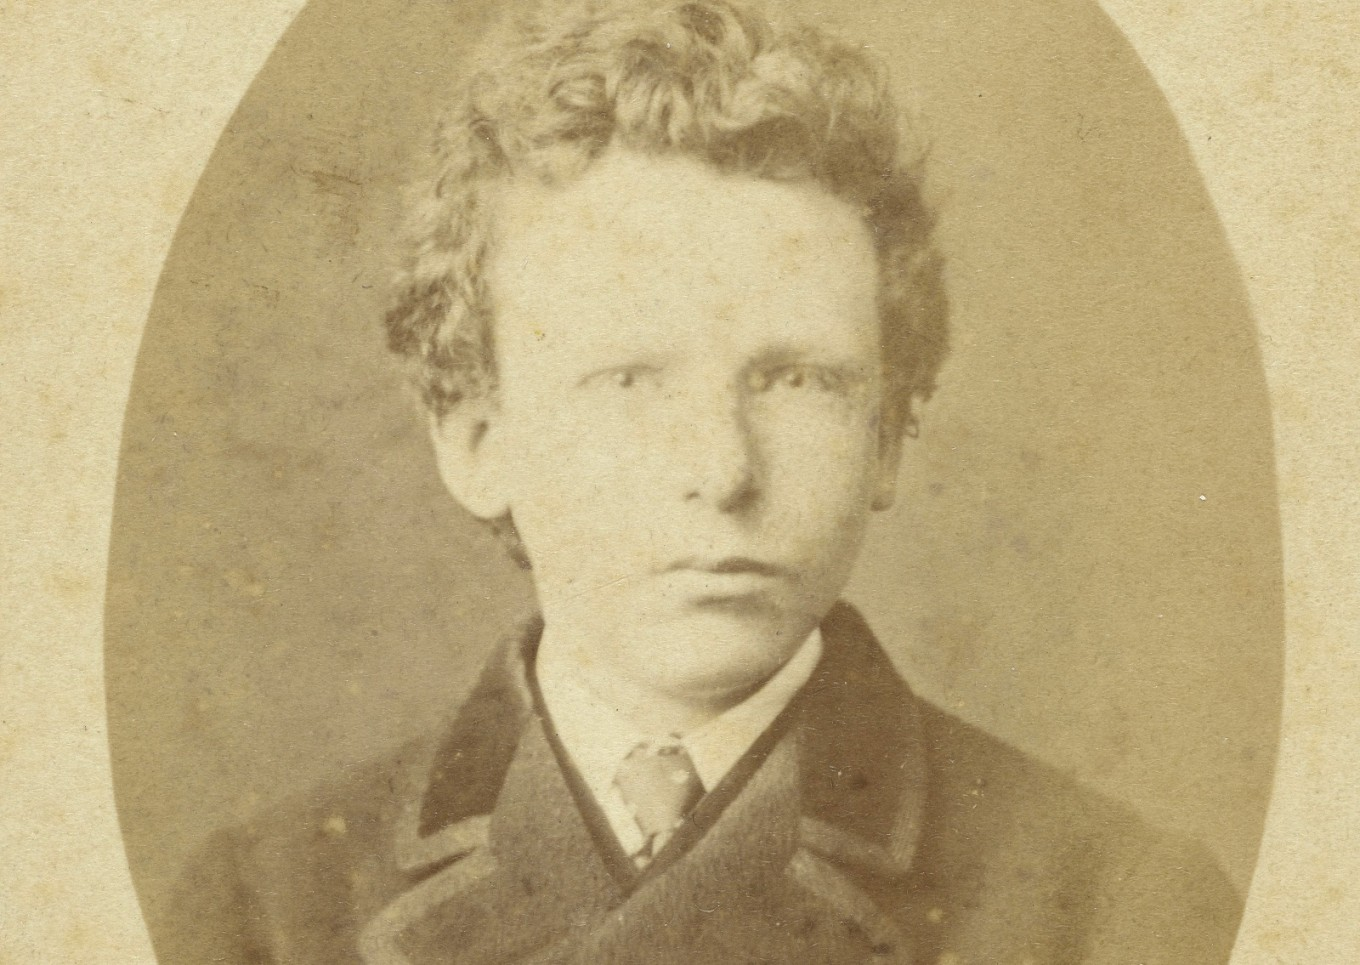 Rare Van Gogh photo is of Vincent's brother, say experts